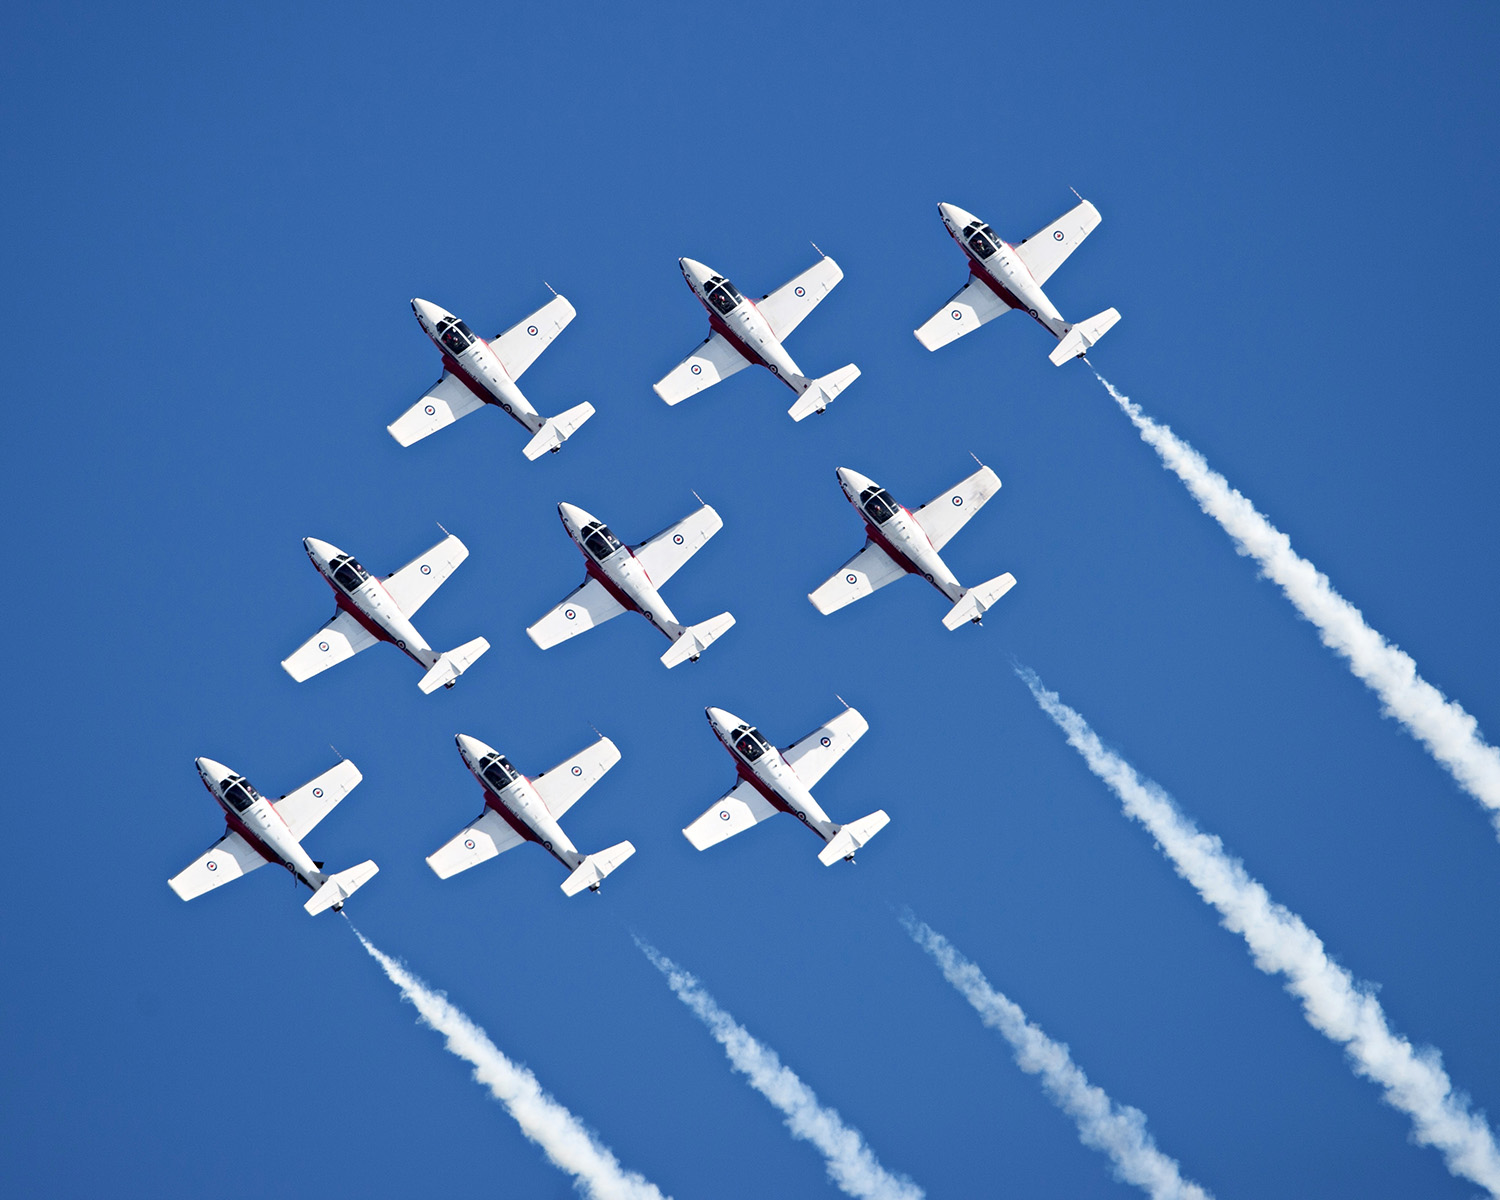 Nine jet aircraft fly in tight formation in a blue sky.